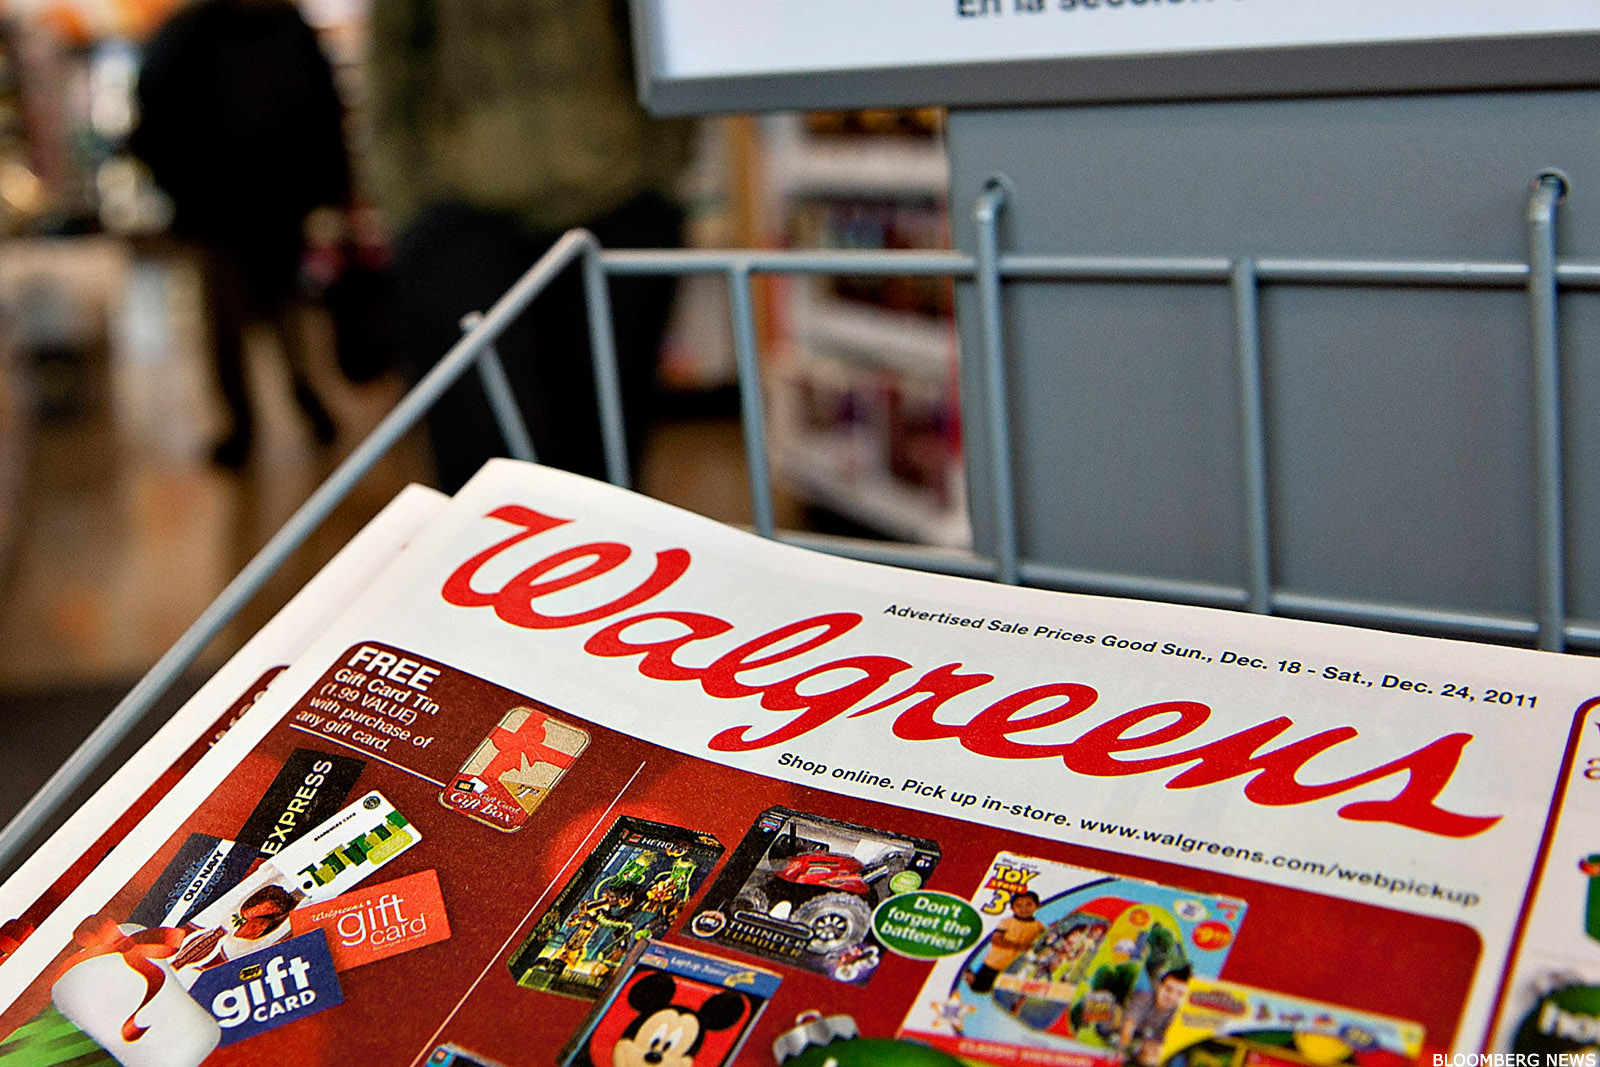 Walgreens Stock Quote Glamorous Walgreens Isn't Out Of The Weeds Yet Even After Earnings Beat